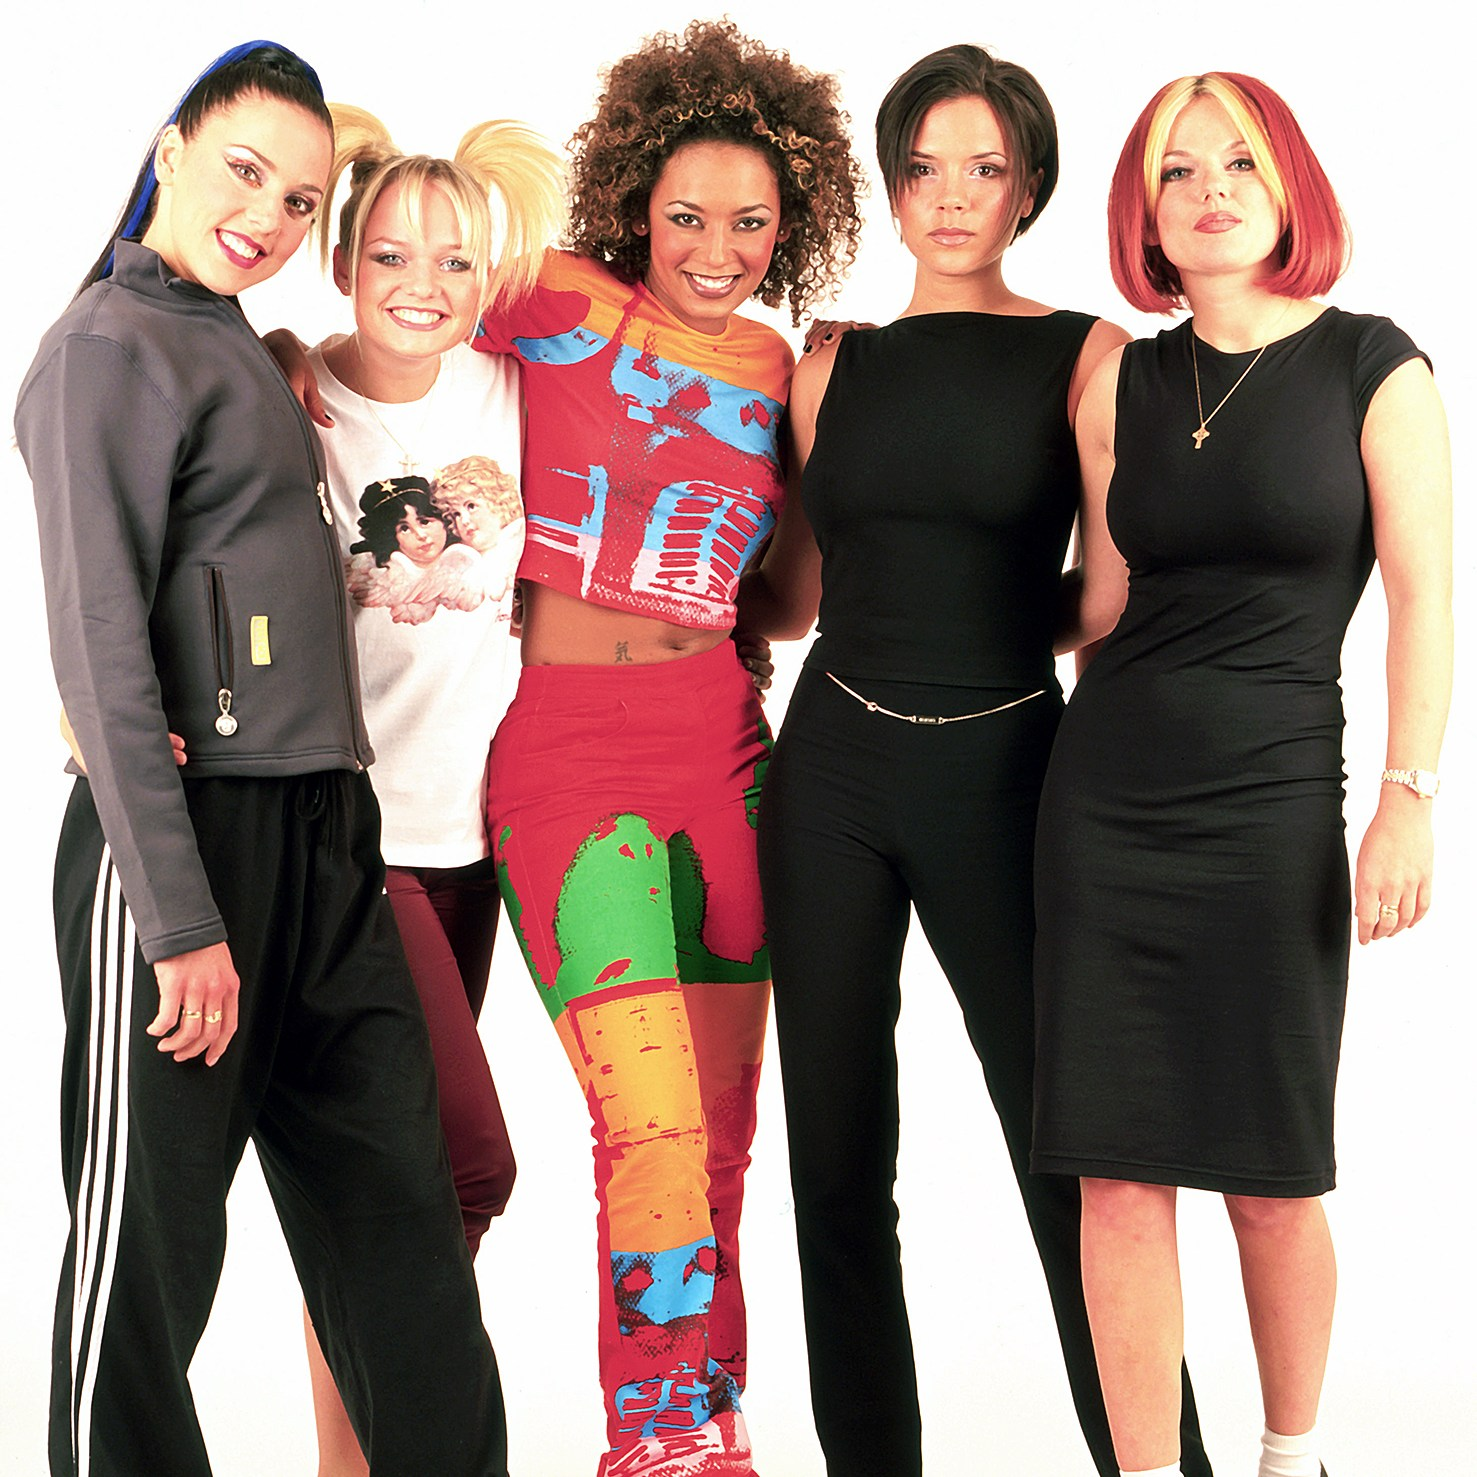 The Spice Girls reunion